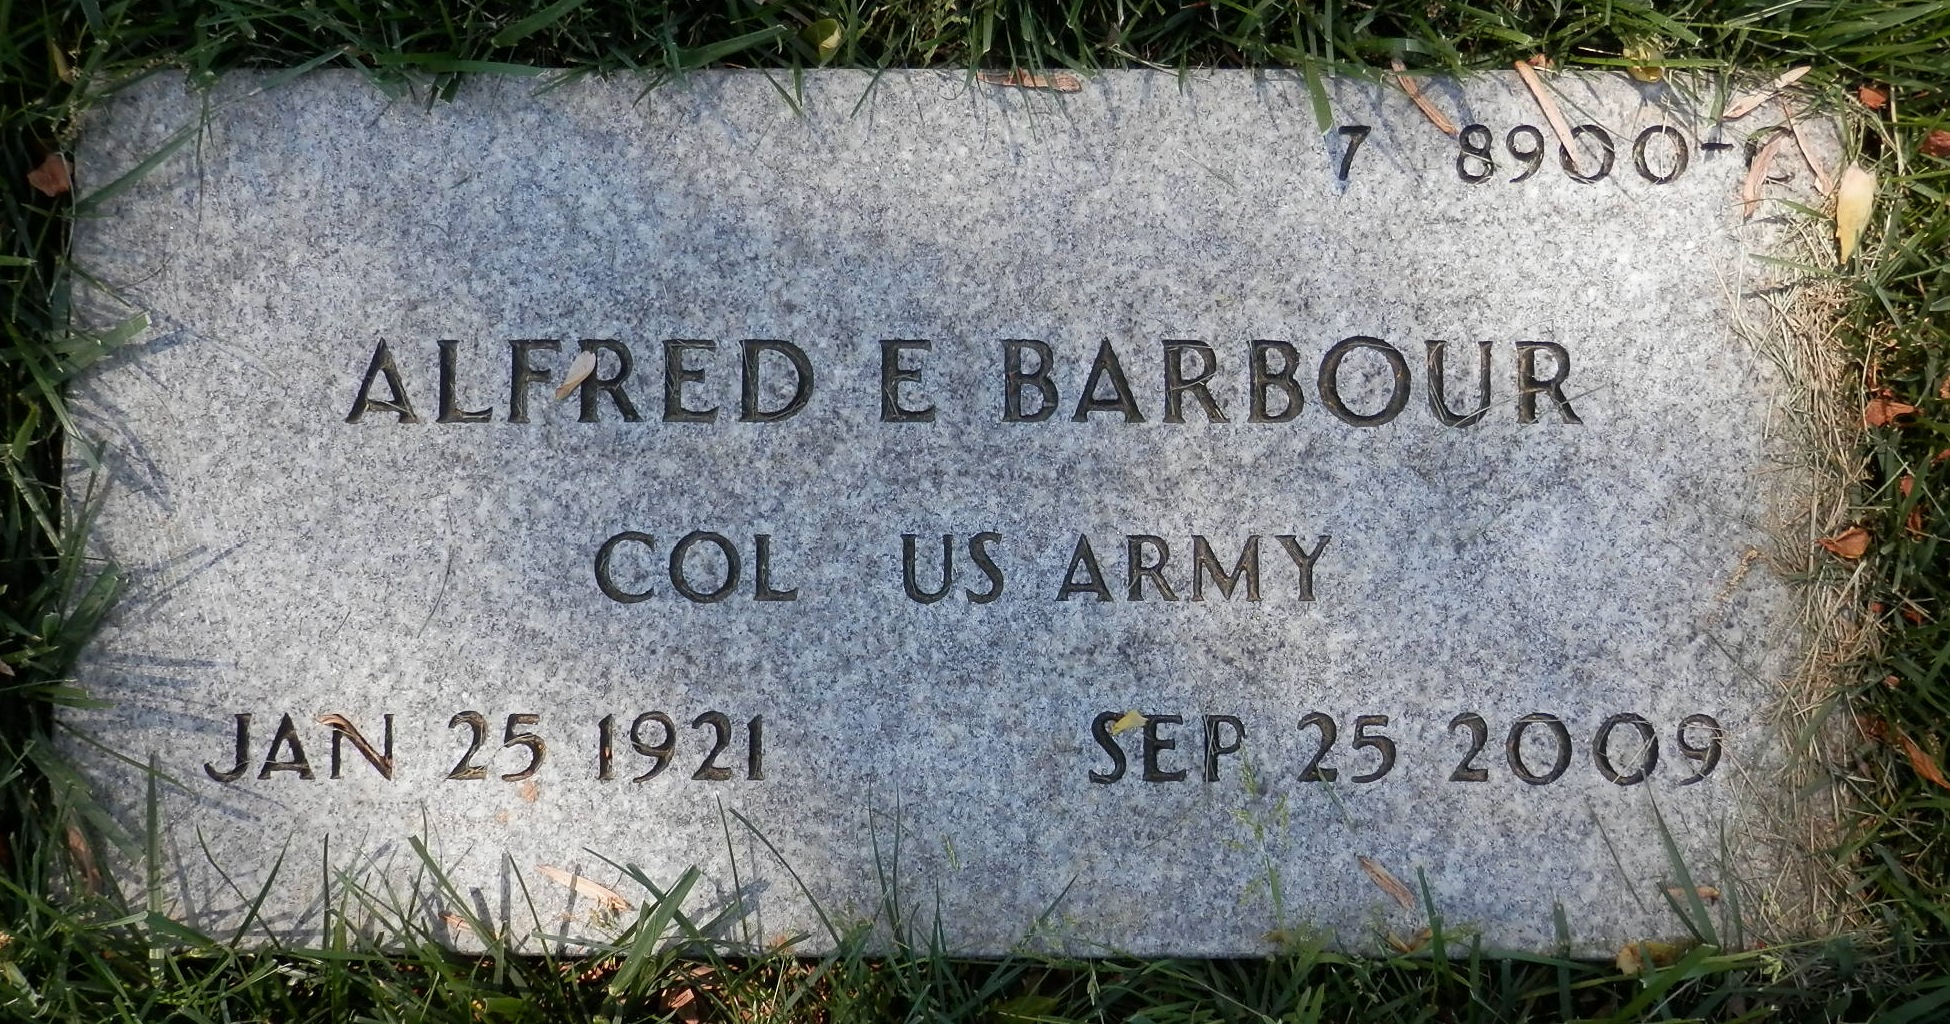 Col Alfred Edgar Barbour